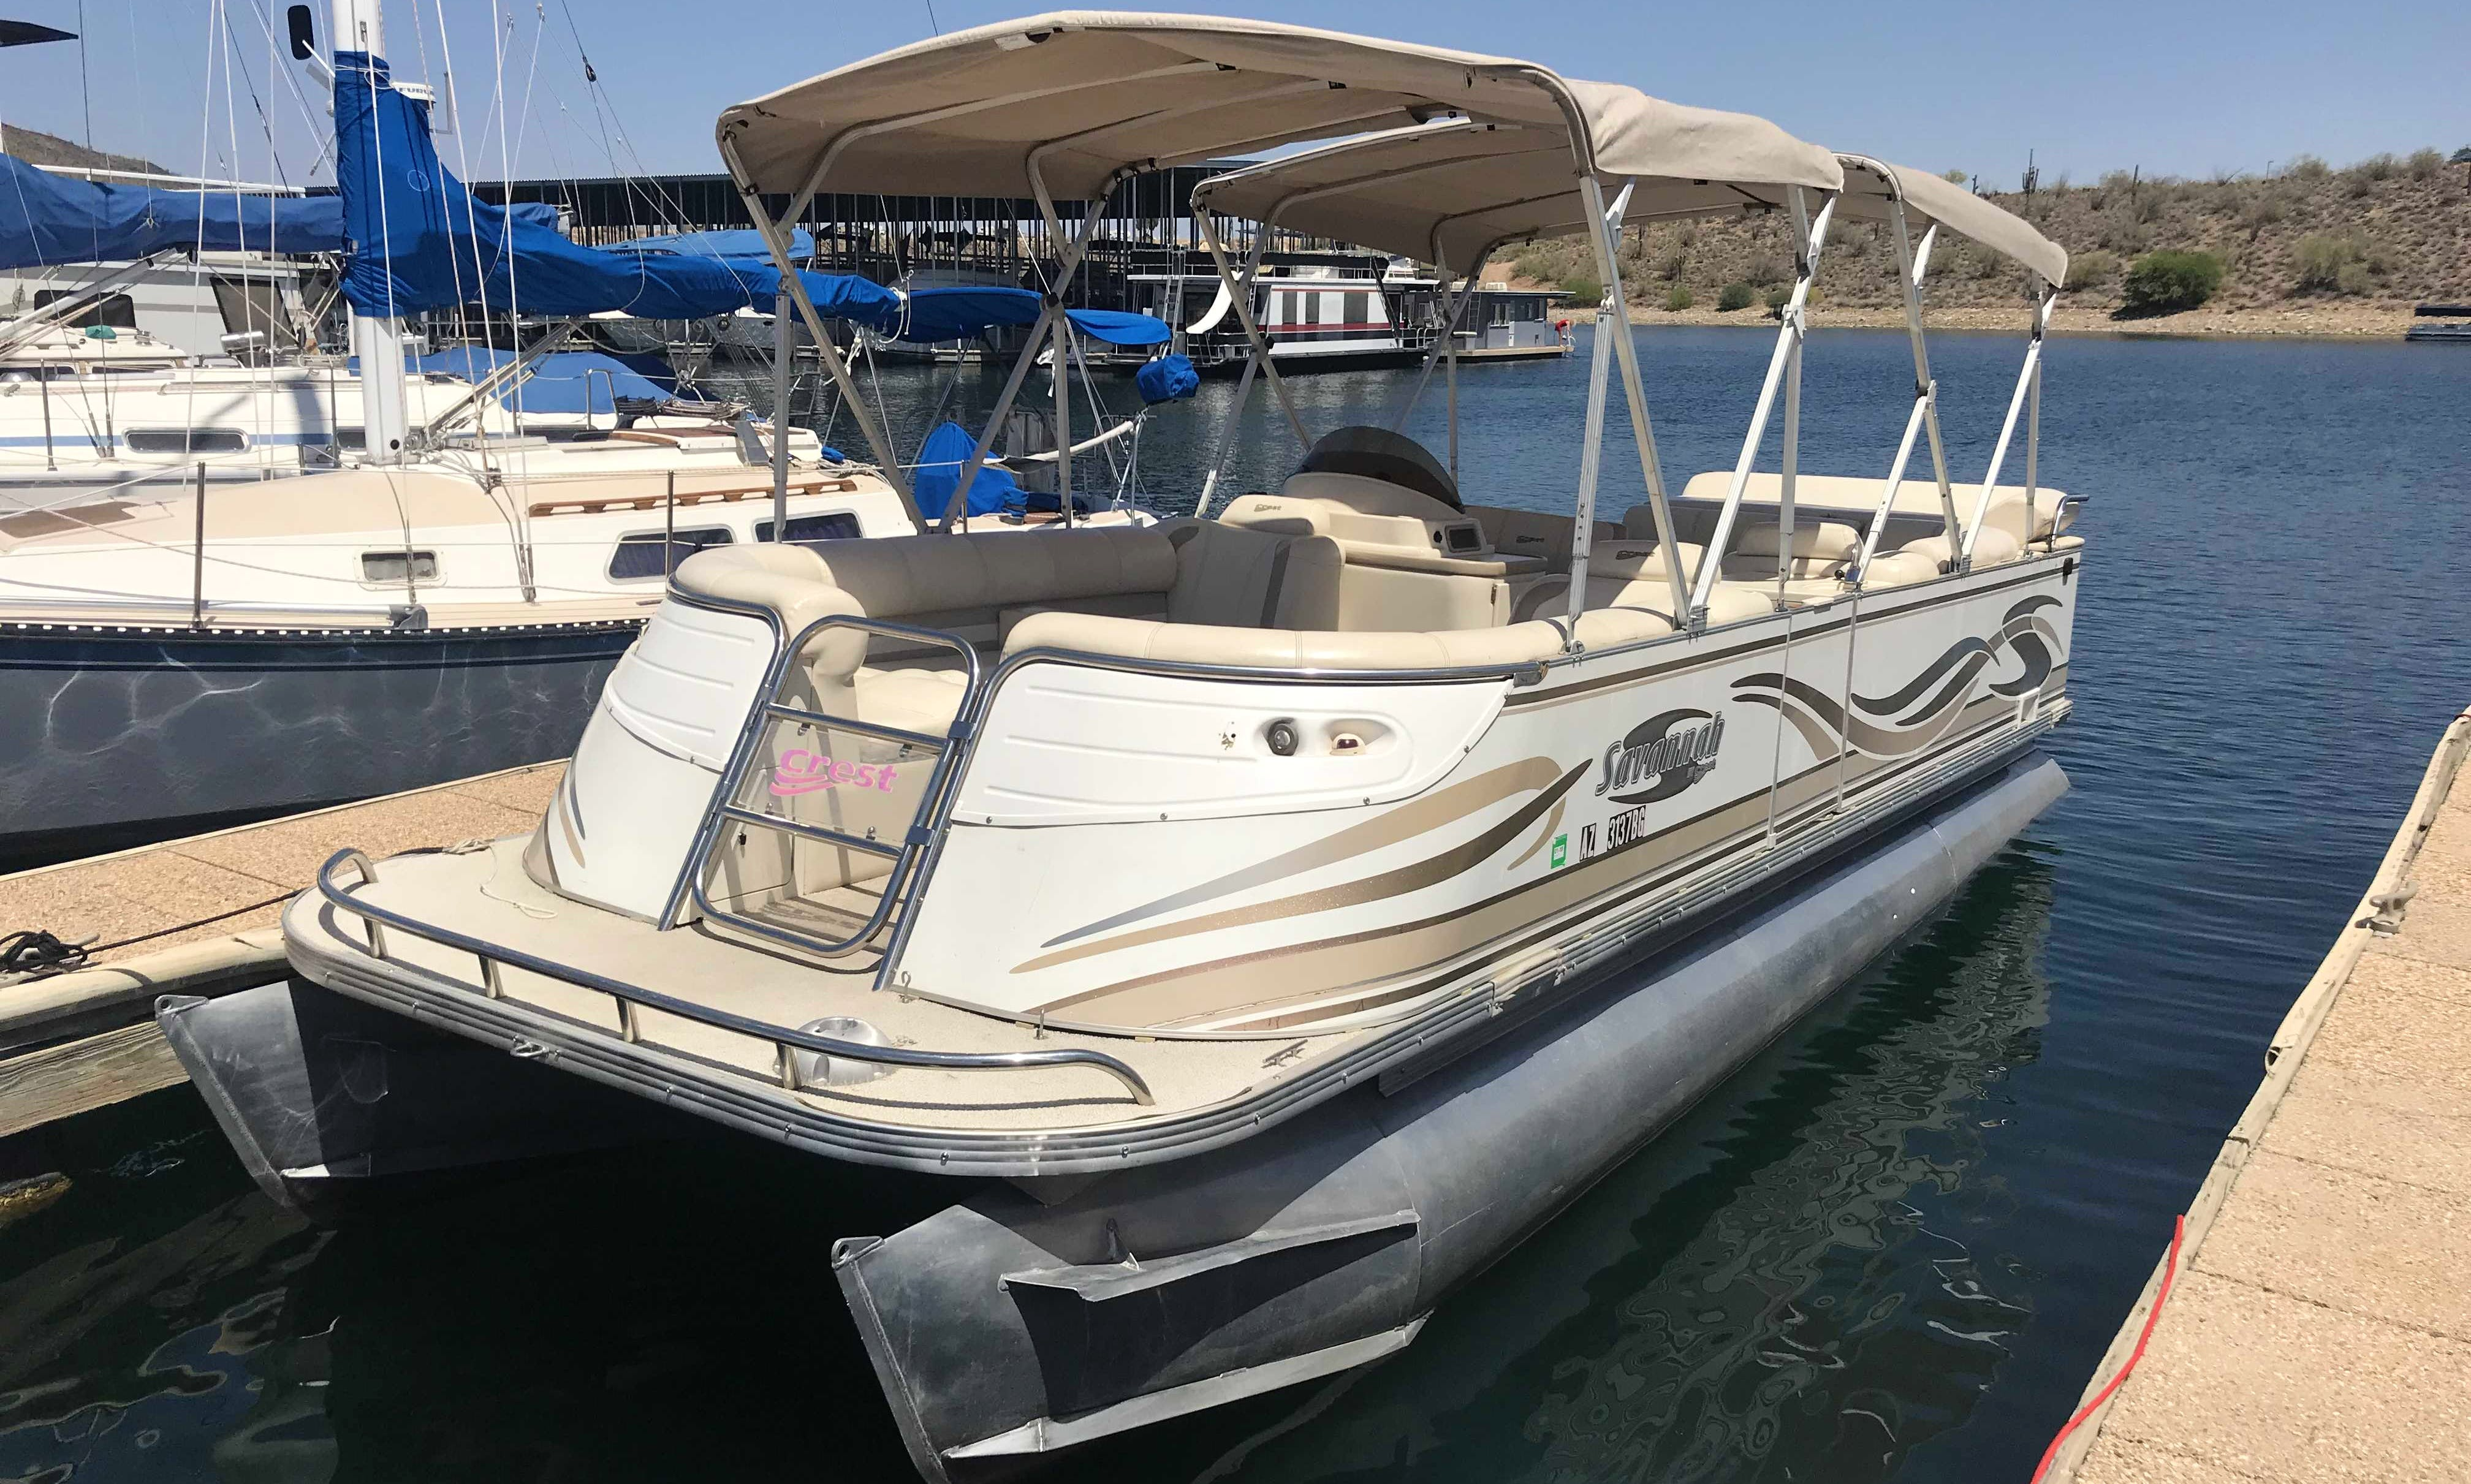 Spacious and fast 25' Crest Pontoon - Perfect combination